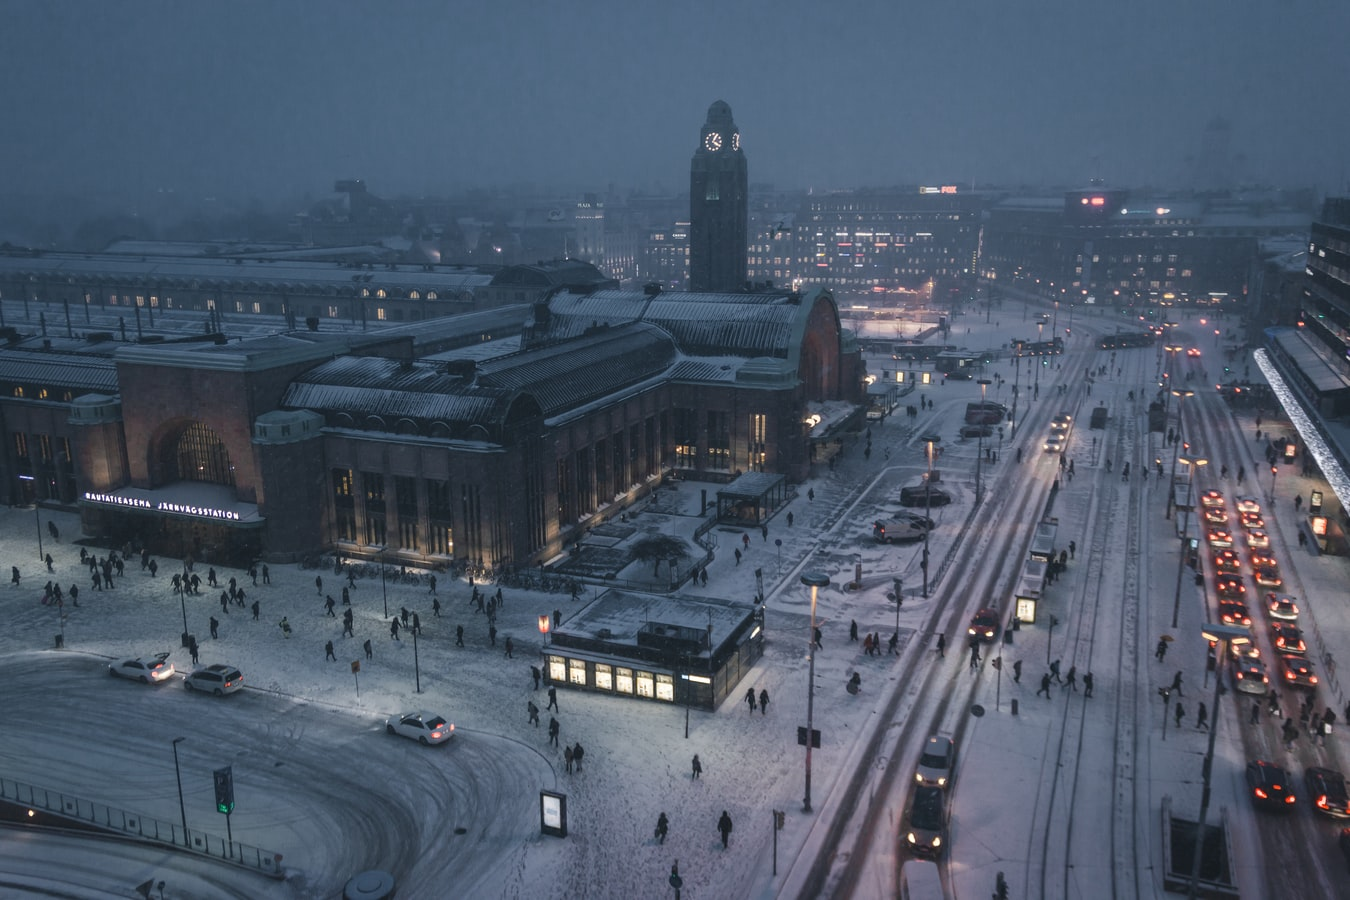 Helsinki aims to use personal data on behalf of the citizens - on citizens' terms